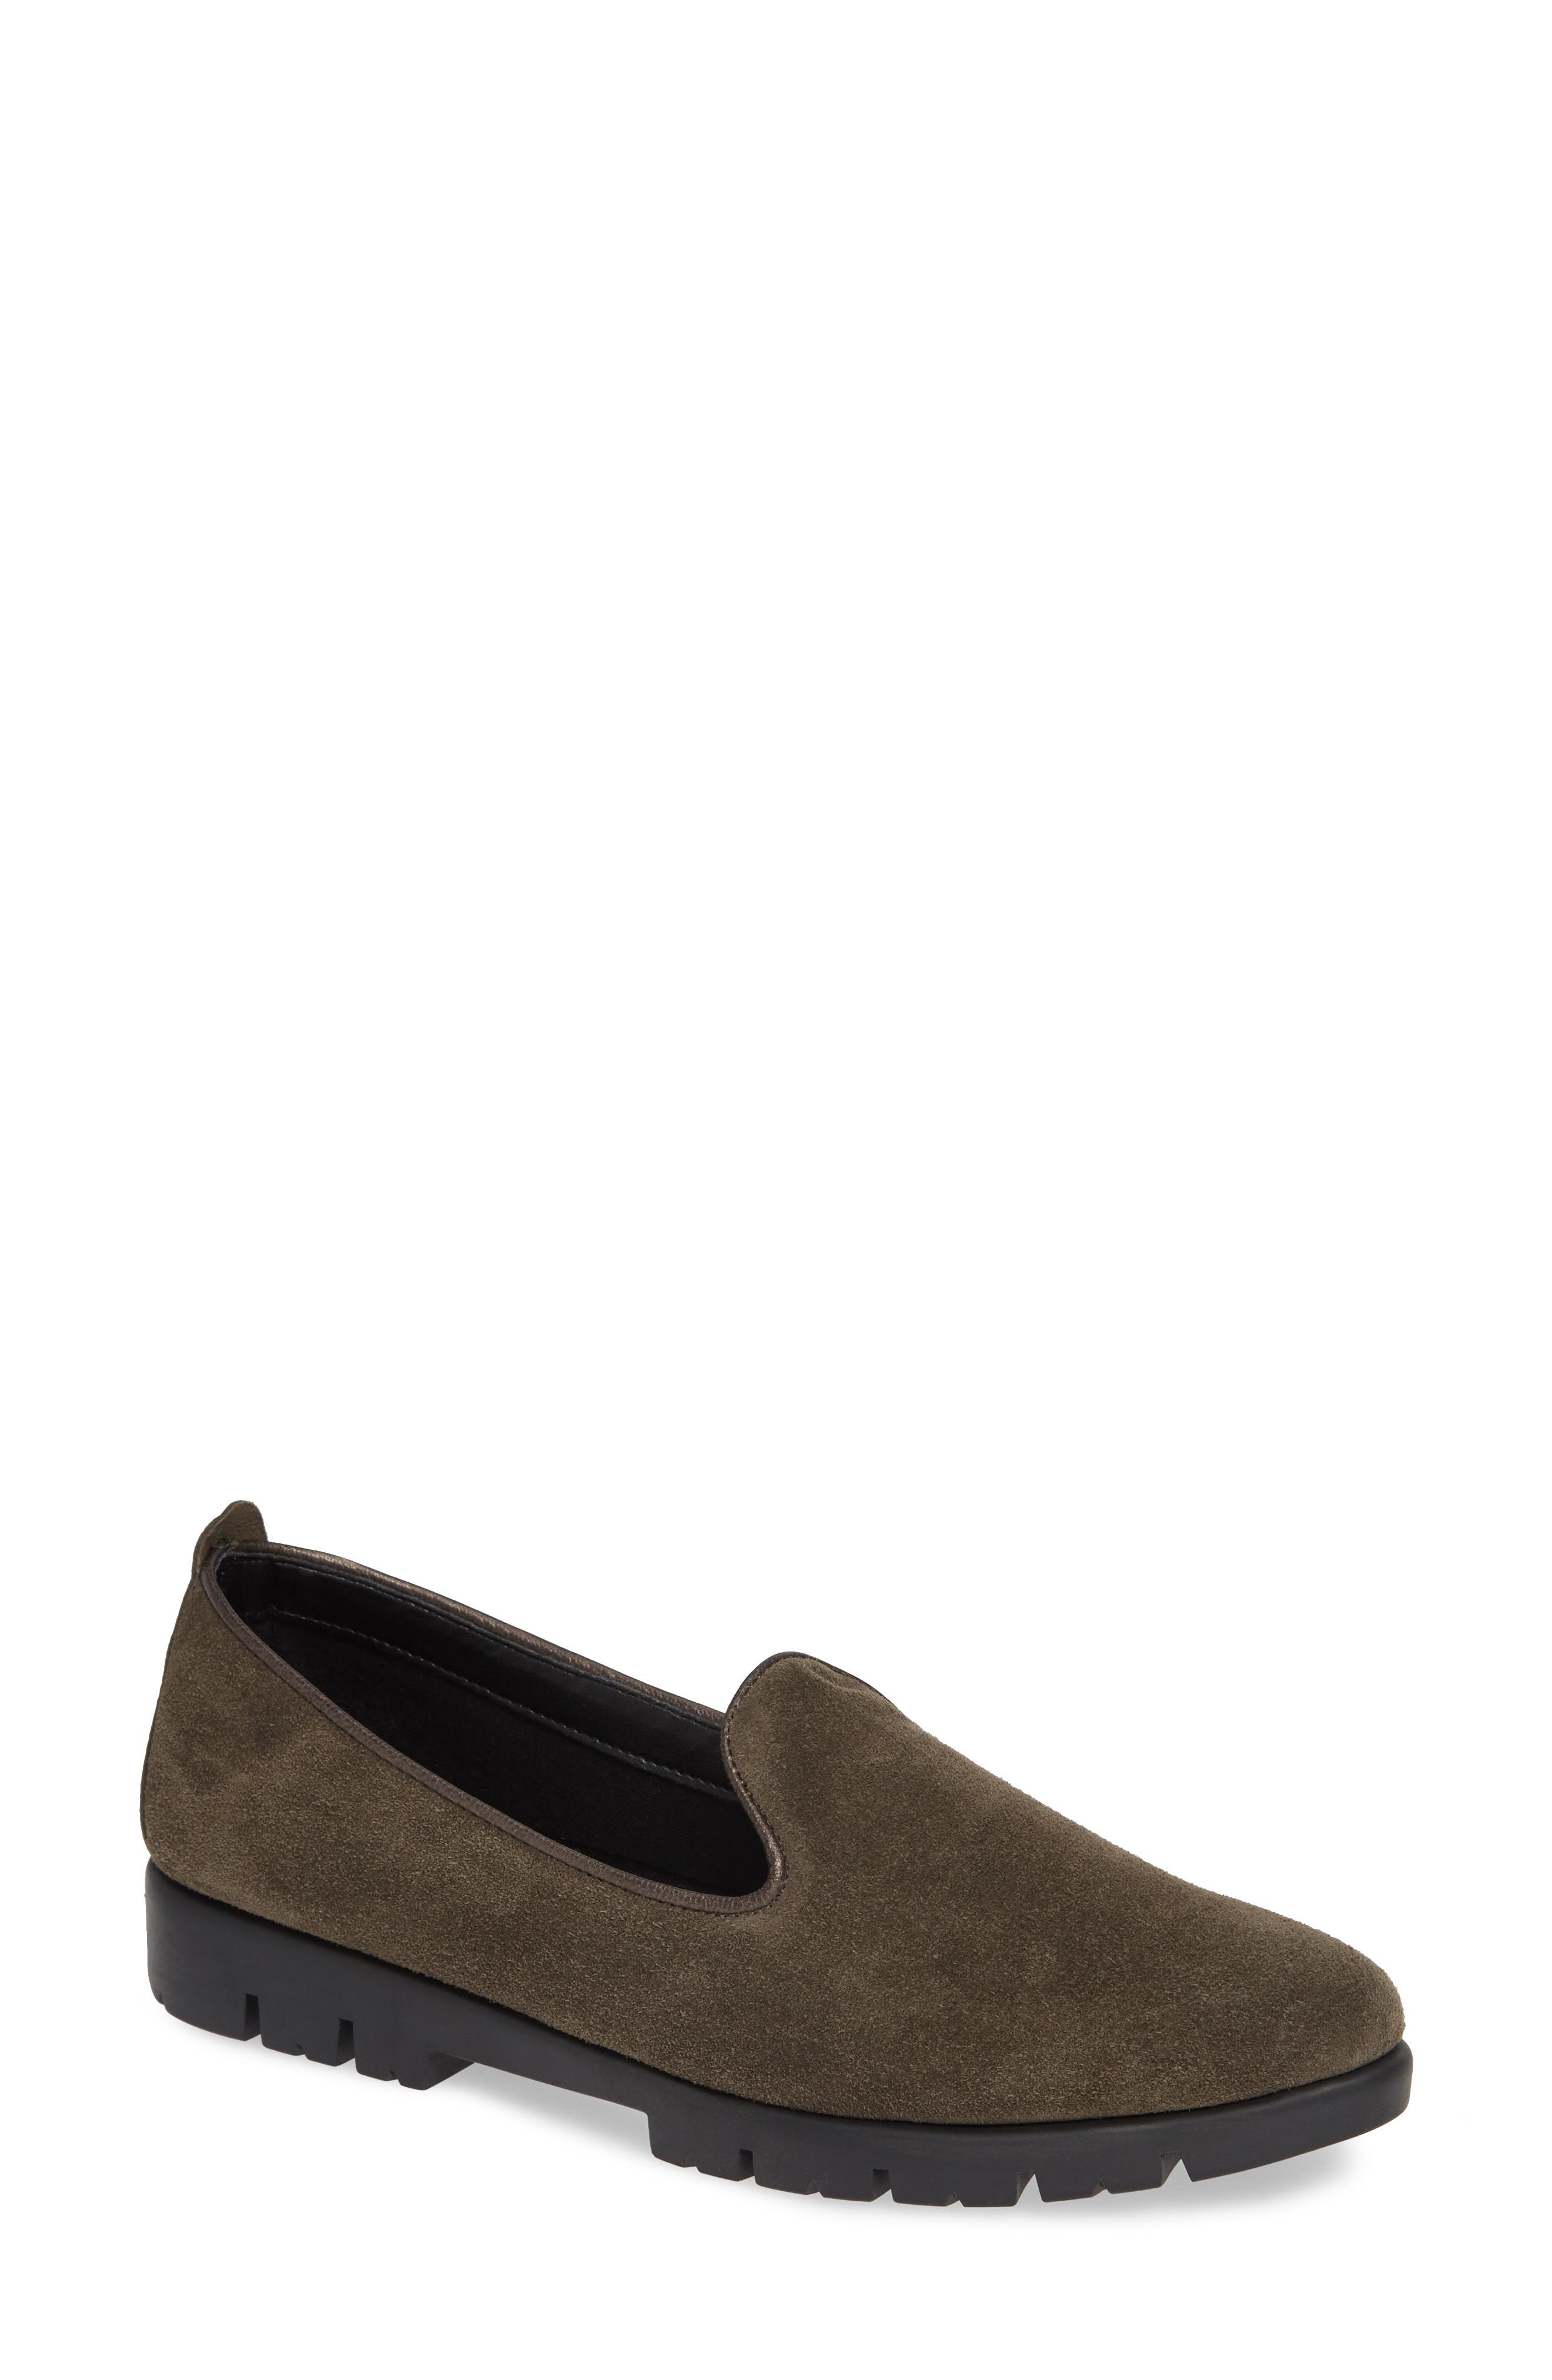 Smokin' Hot Plush Loafer,                         Main,                         color, BROWN SUEDE